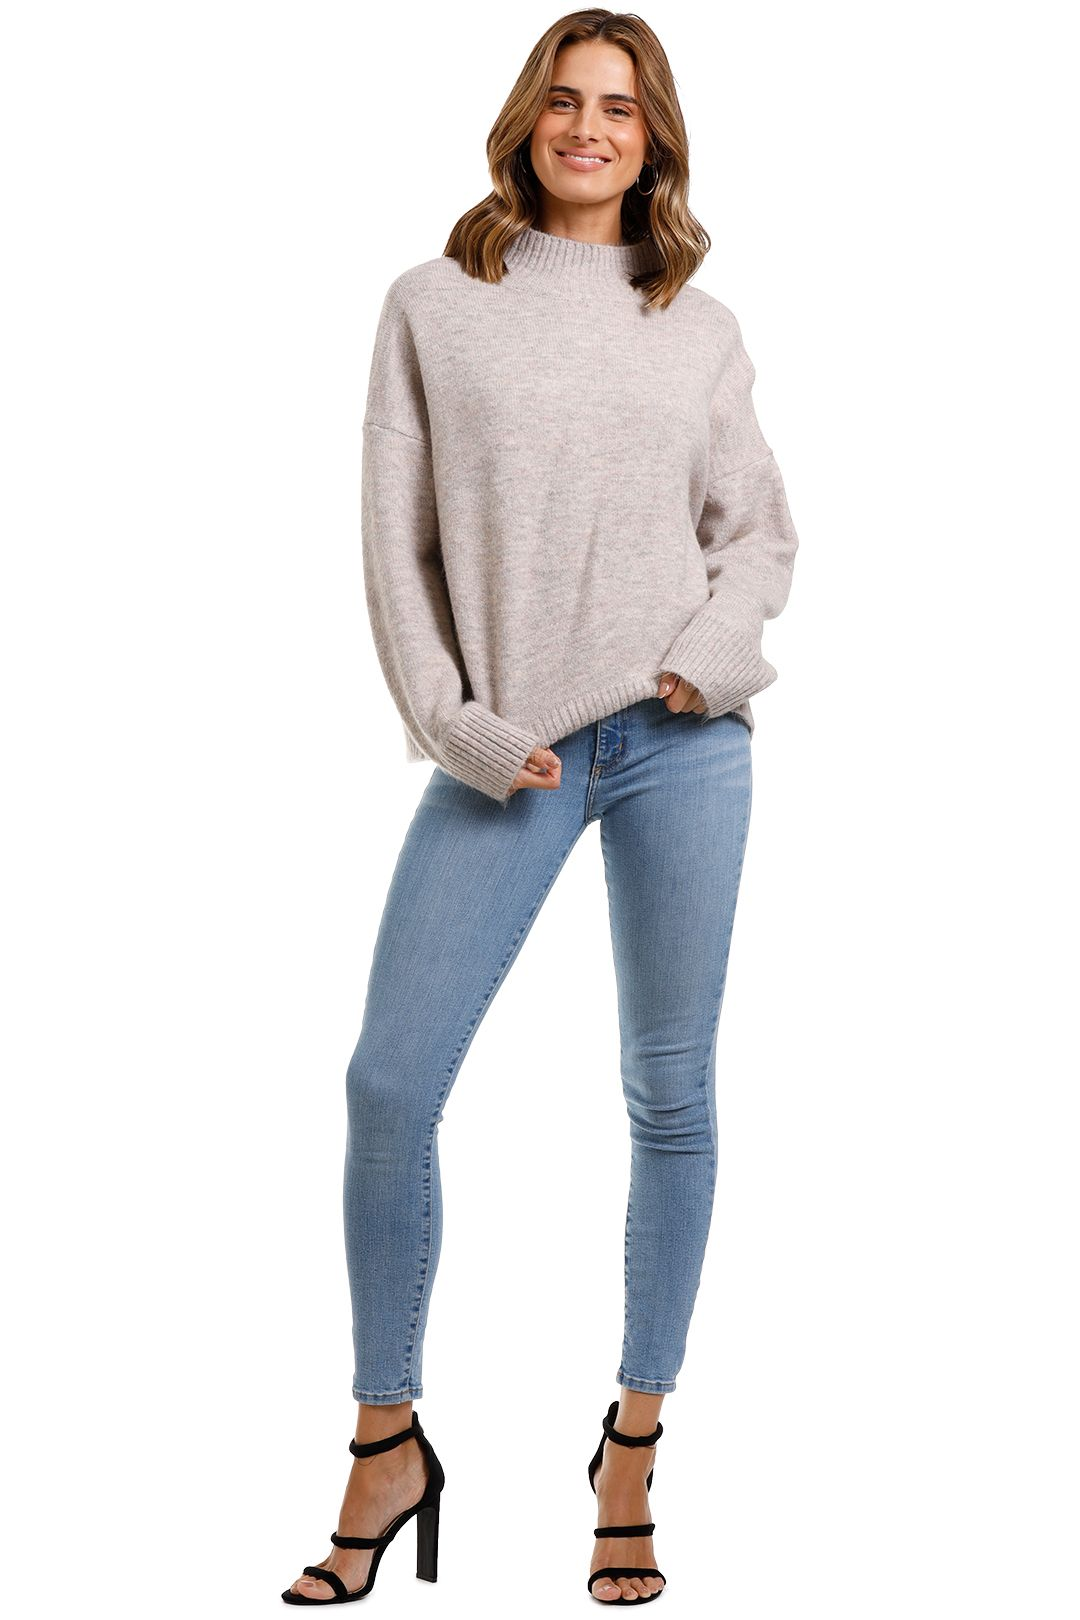 Staple The Label Mock Neck Jumper